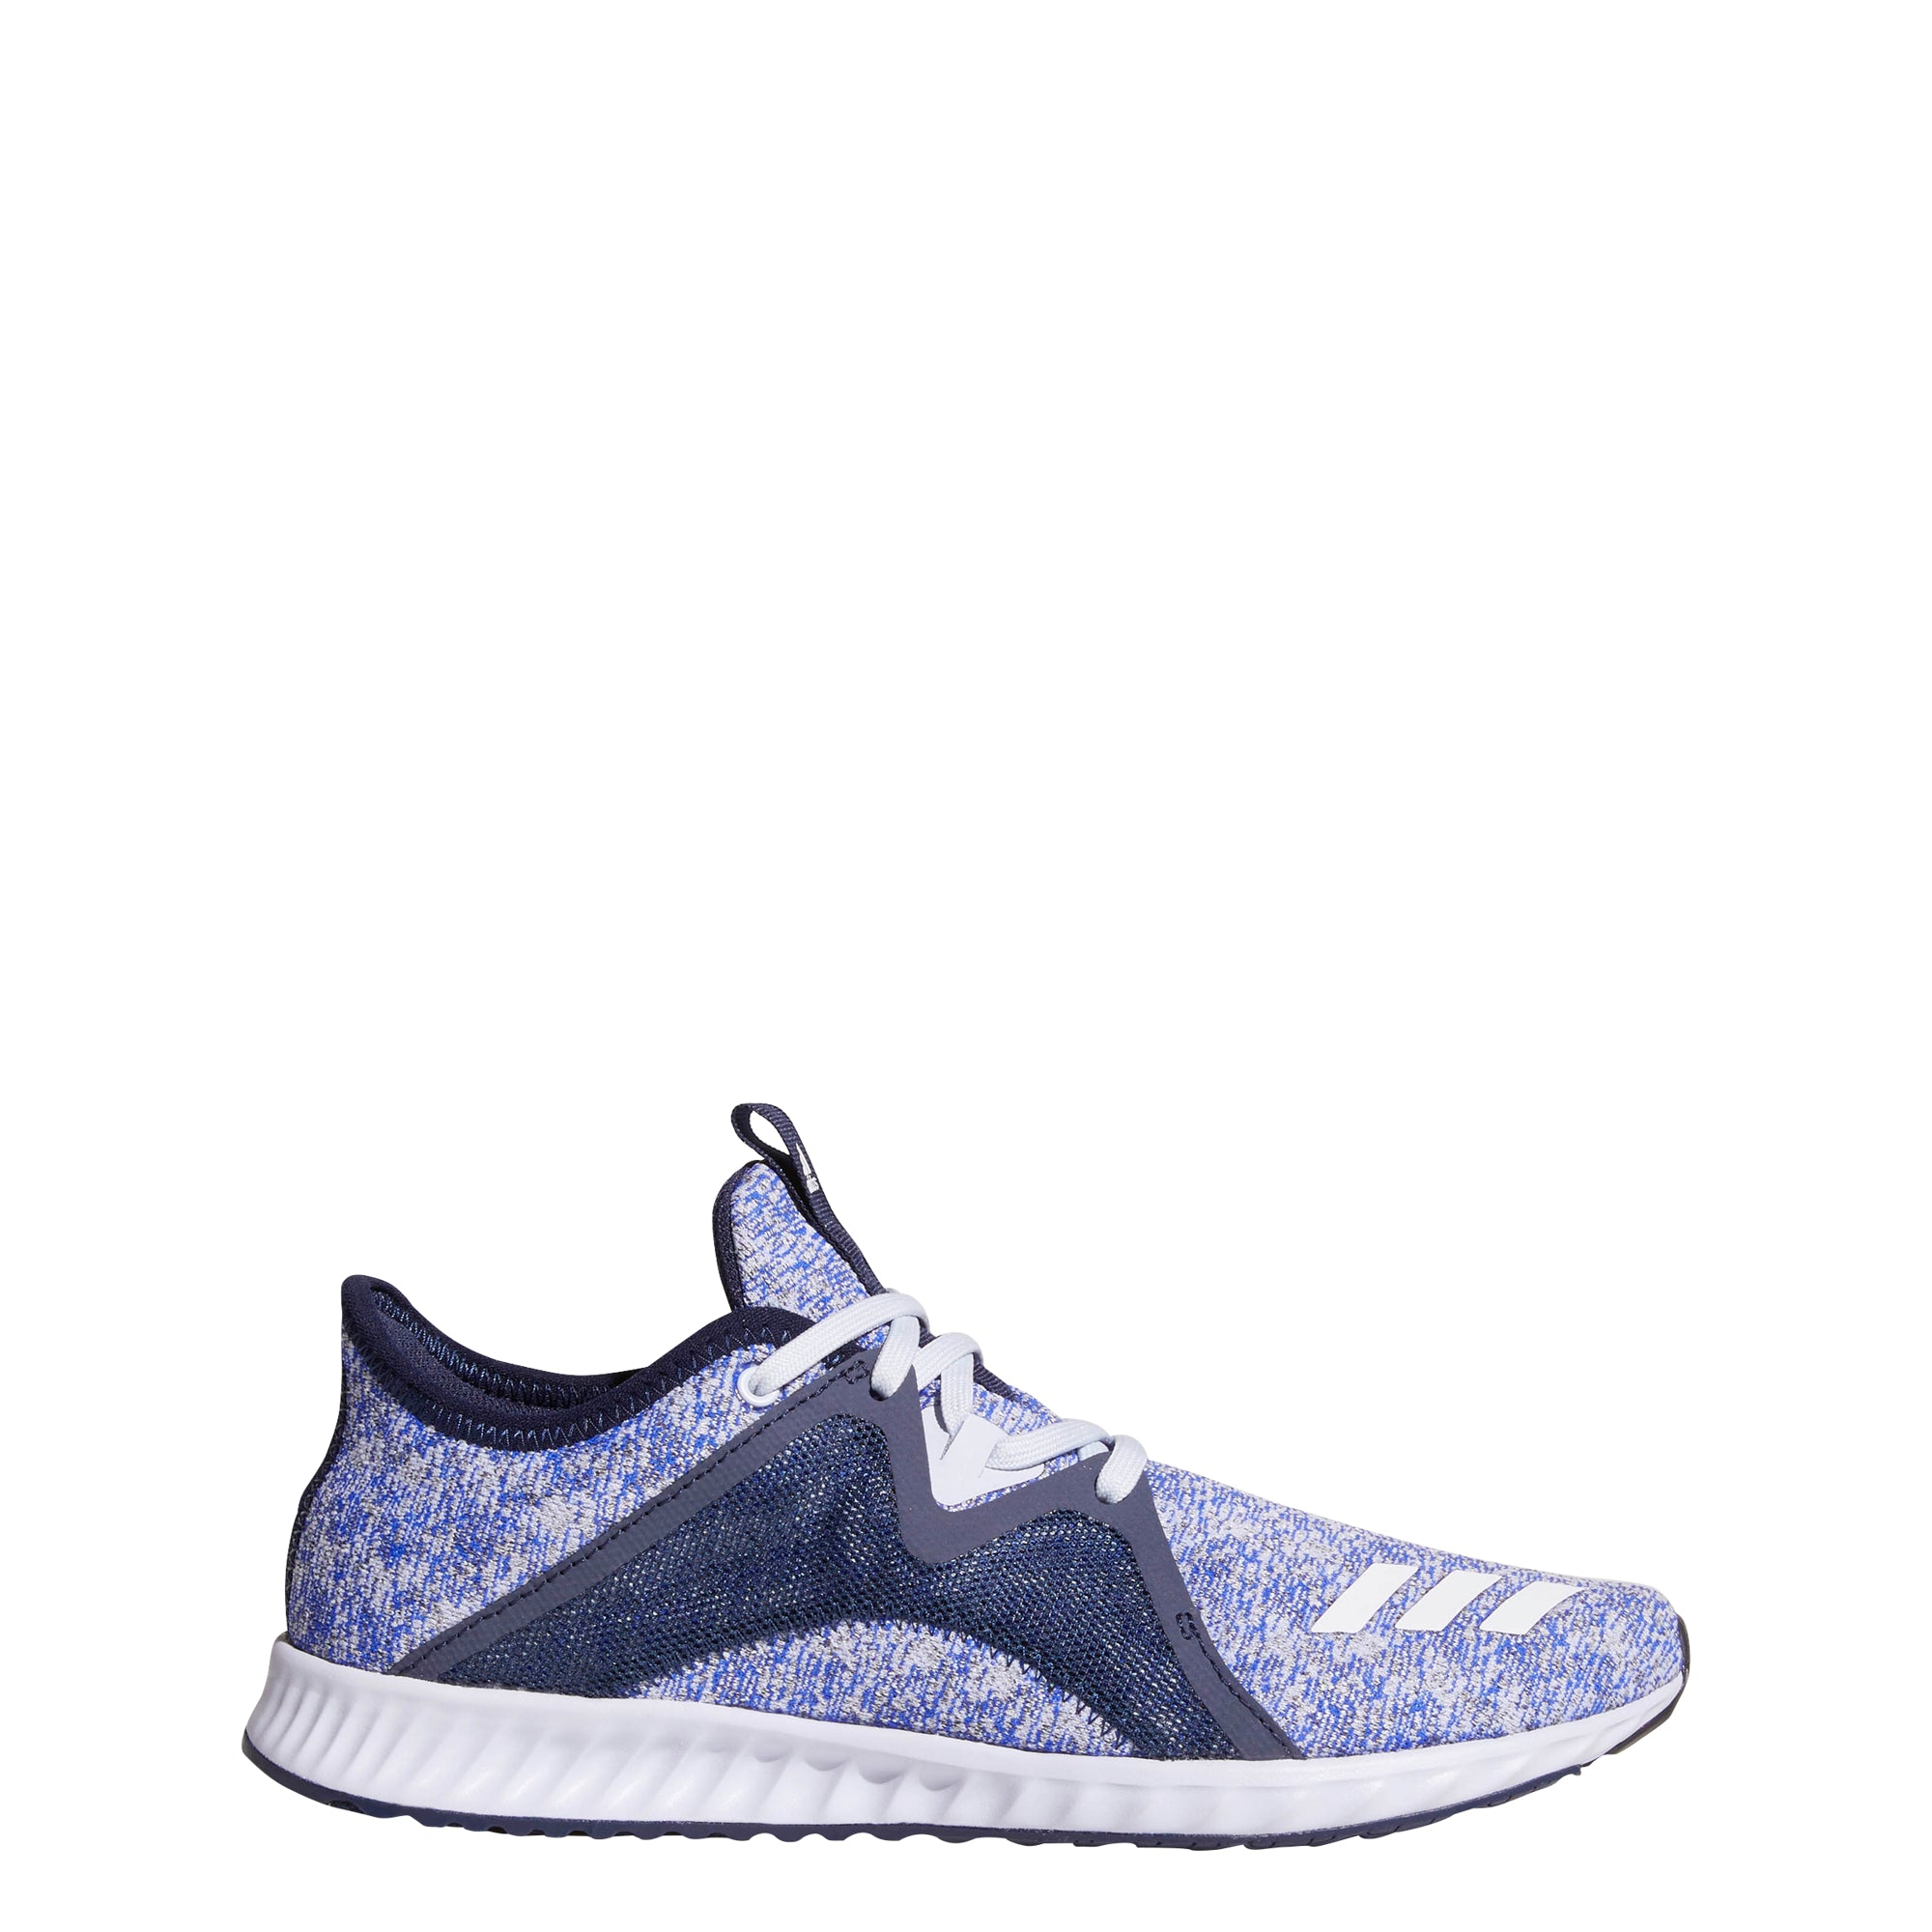 temperament shoes later good selling Adidas 2 Lux Textile Edge Chaussure WCxdQrBoe